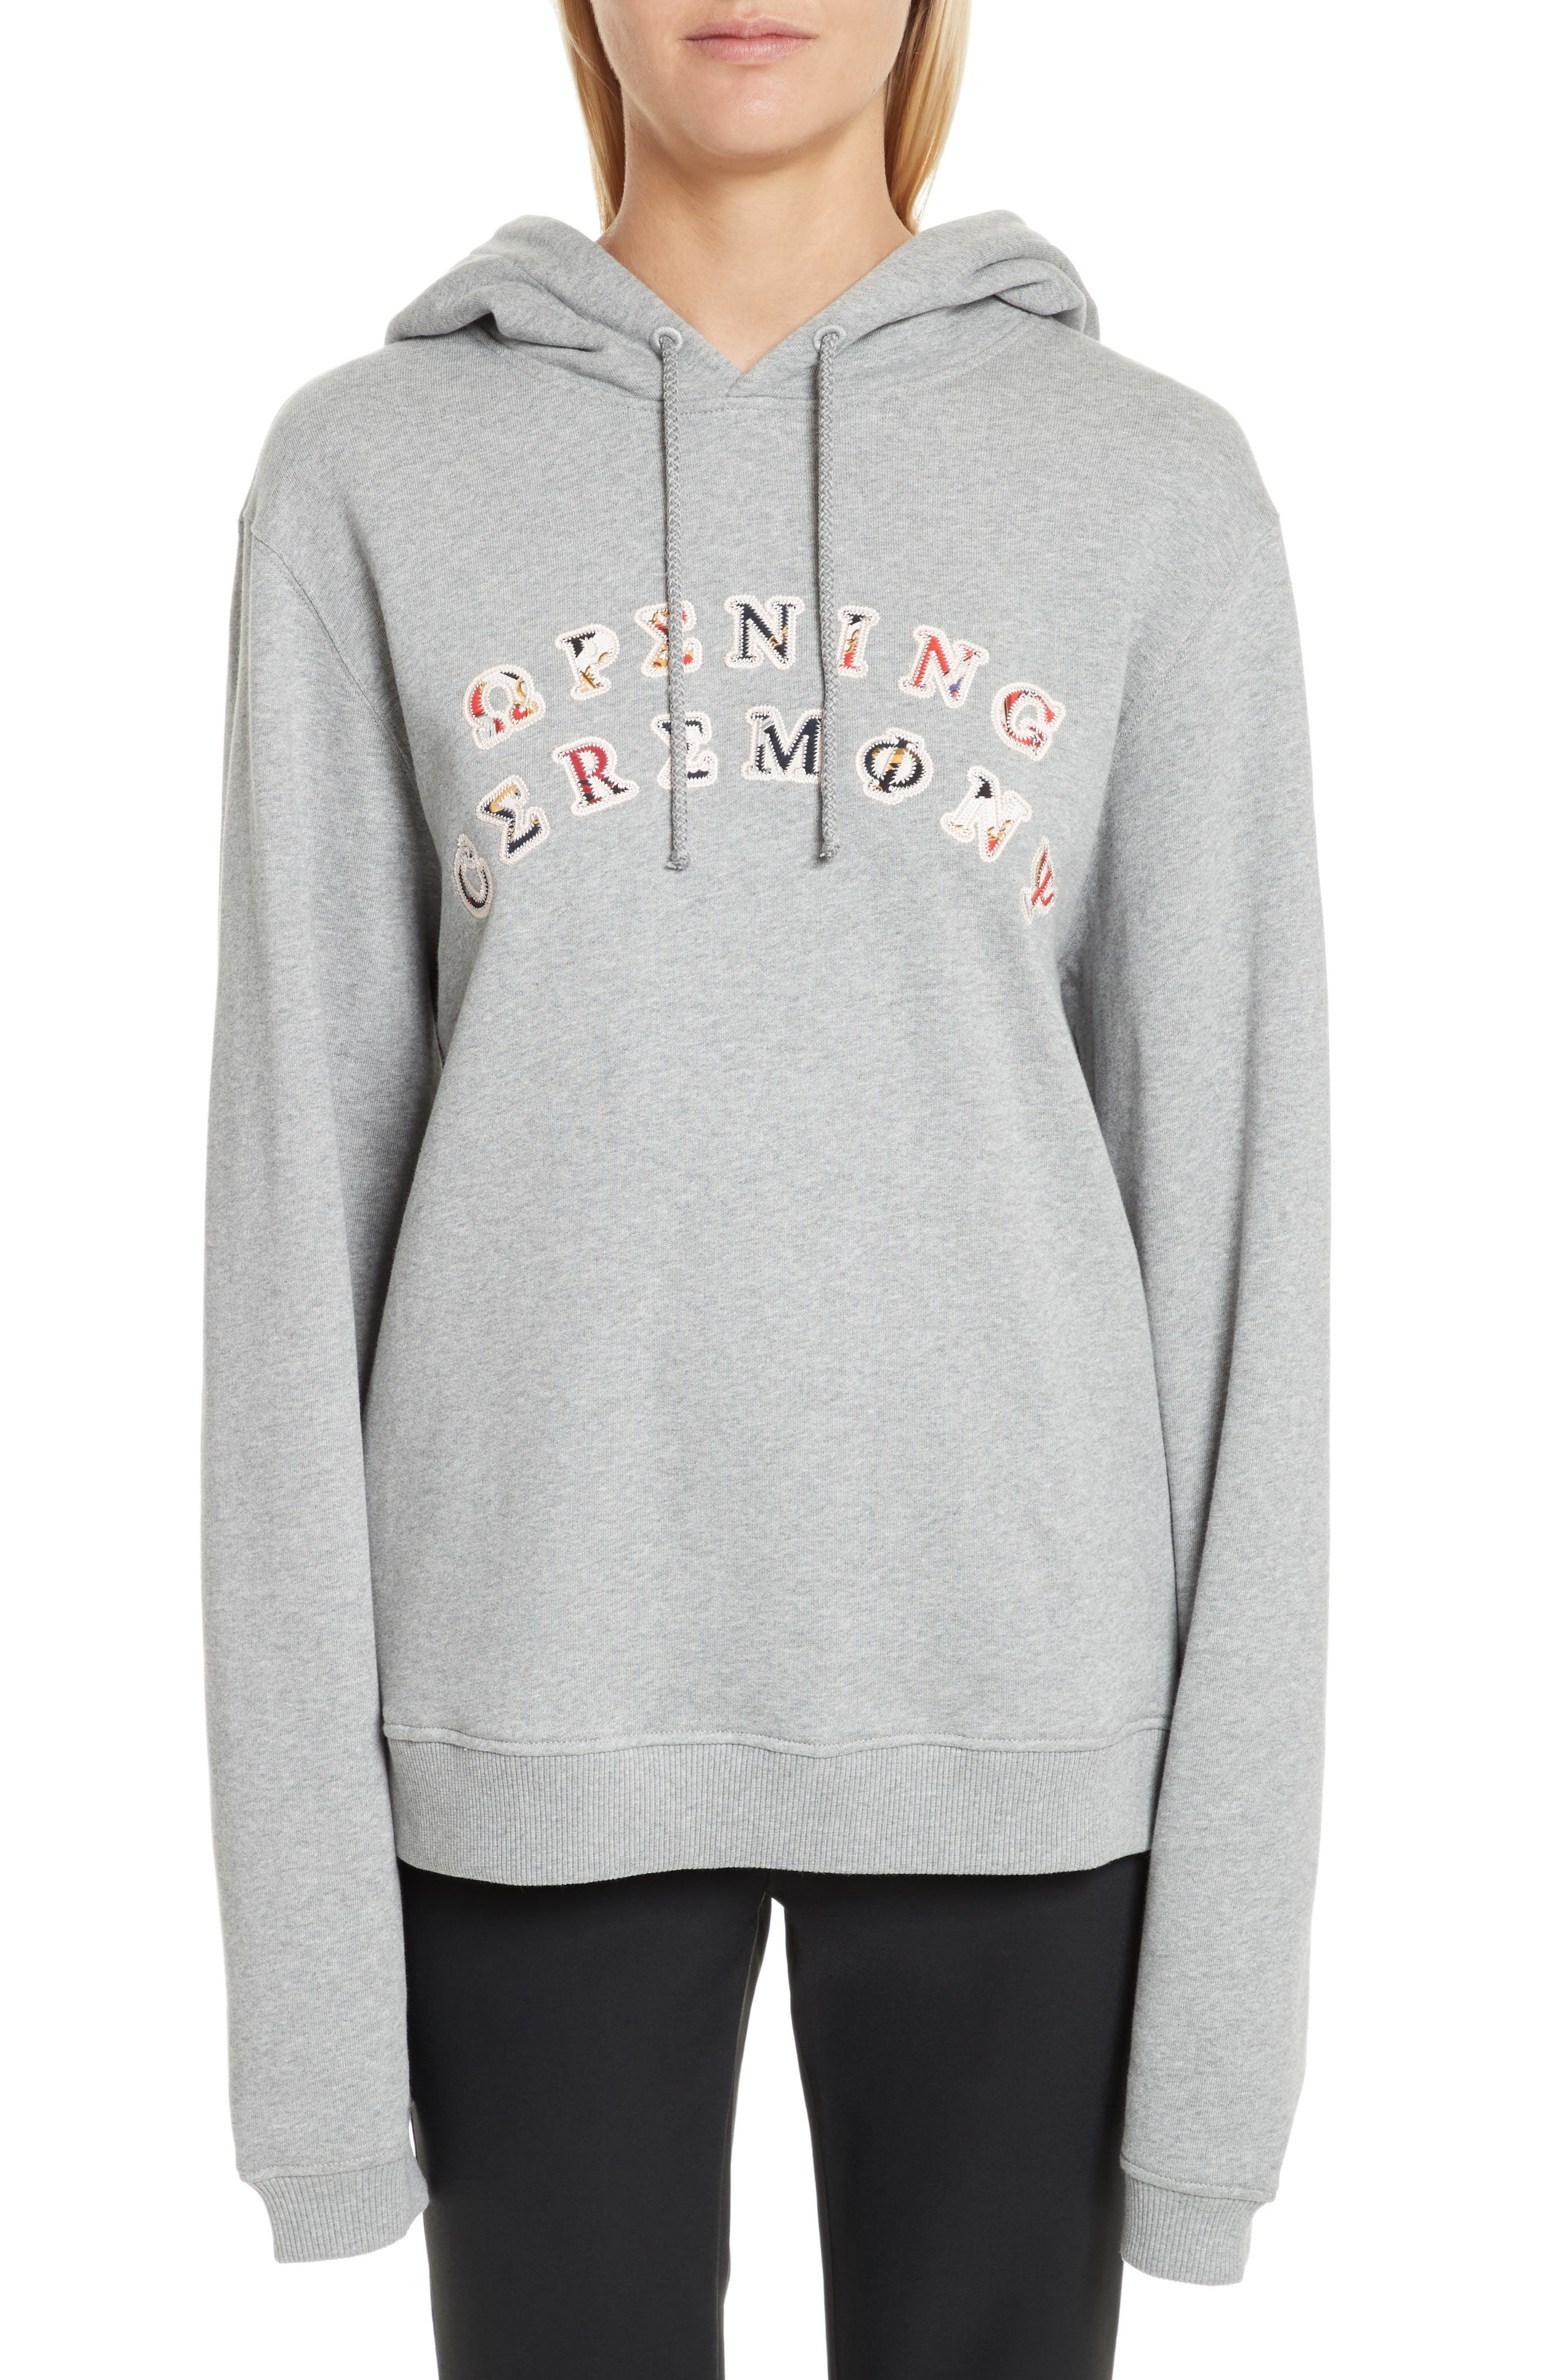 OC Patch Hoodie,                         Main,                         color, Heather Grey